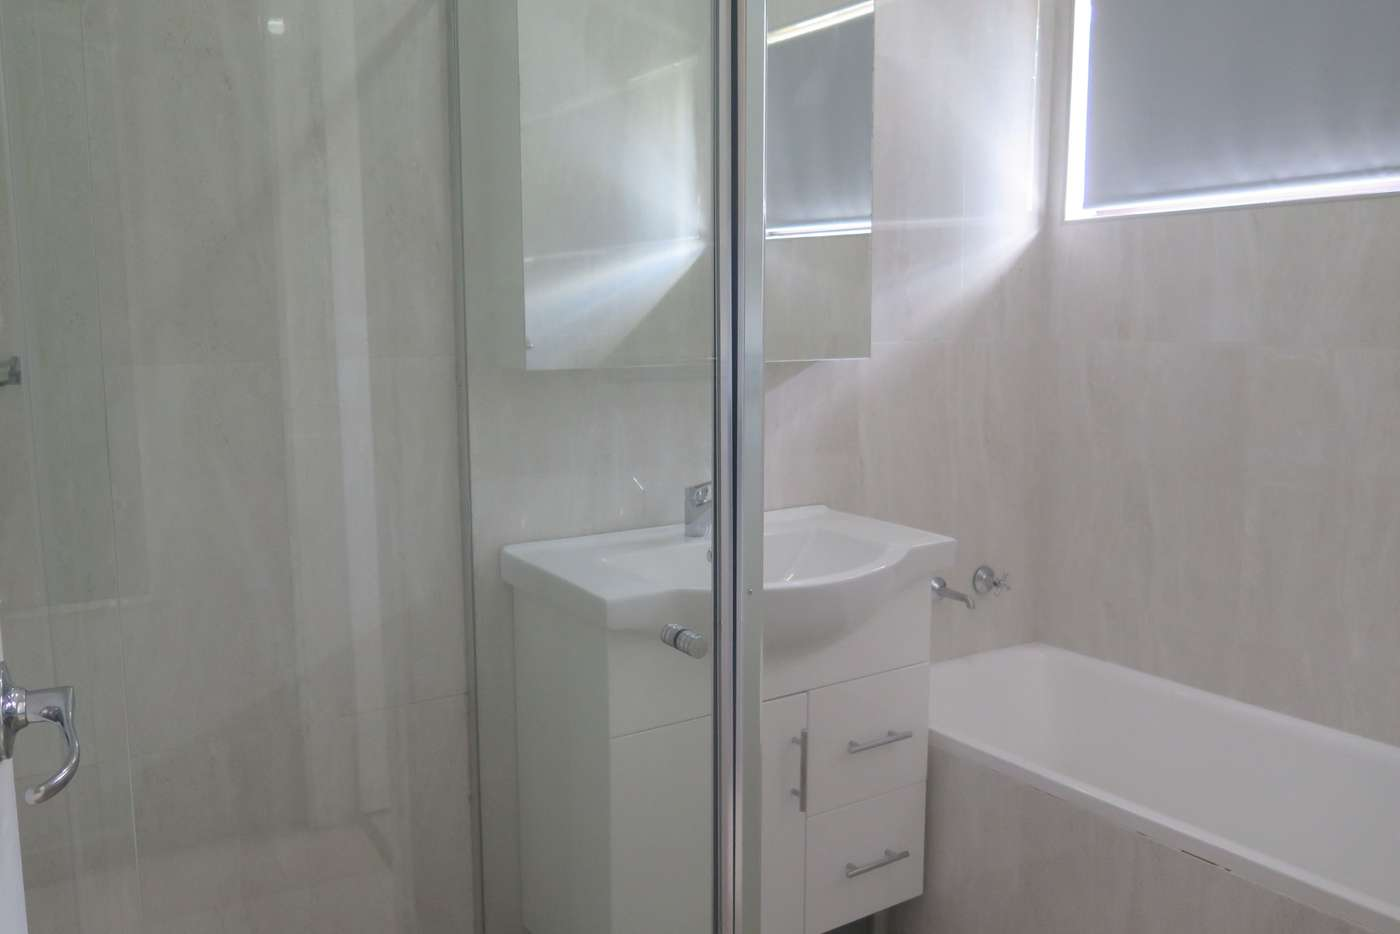 Seventh view of Homely house listing, 20 Benaud Court, St Clair NSW 2759